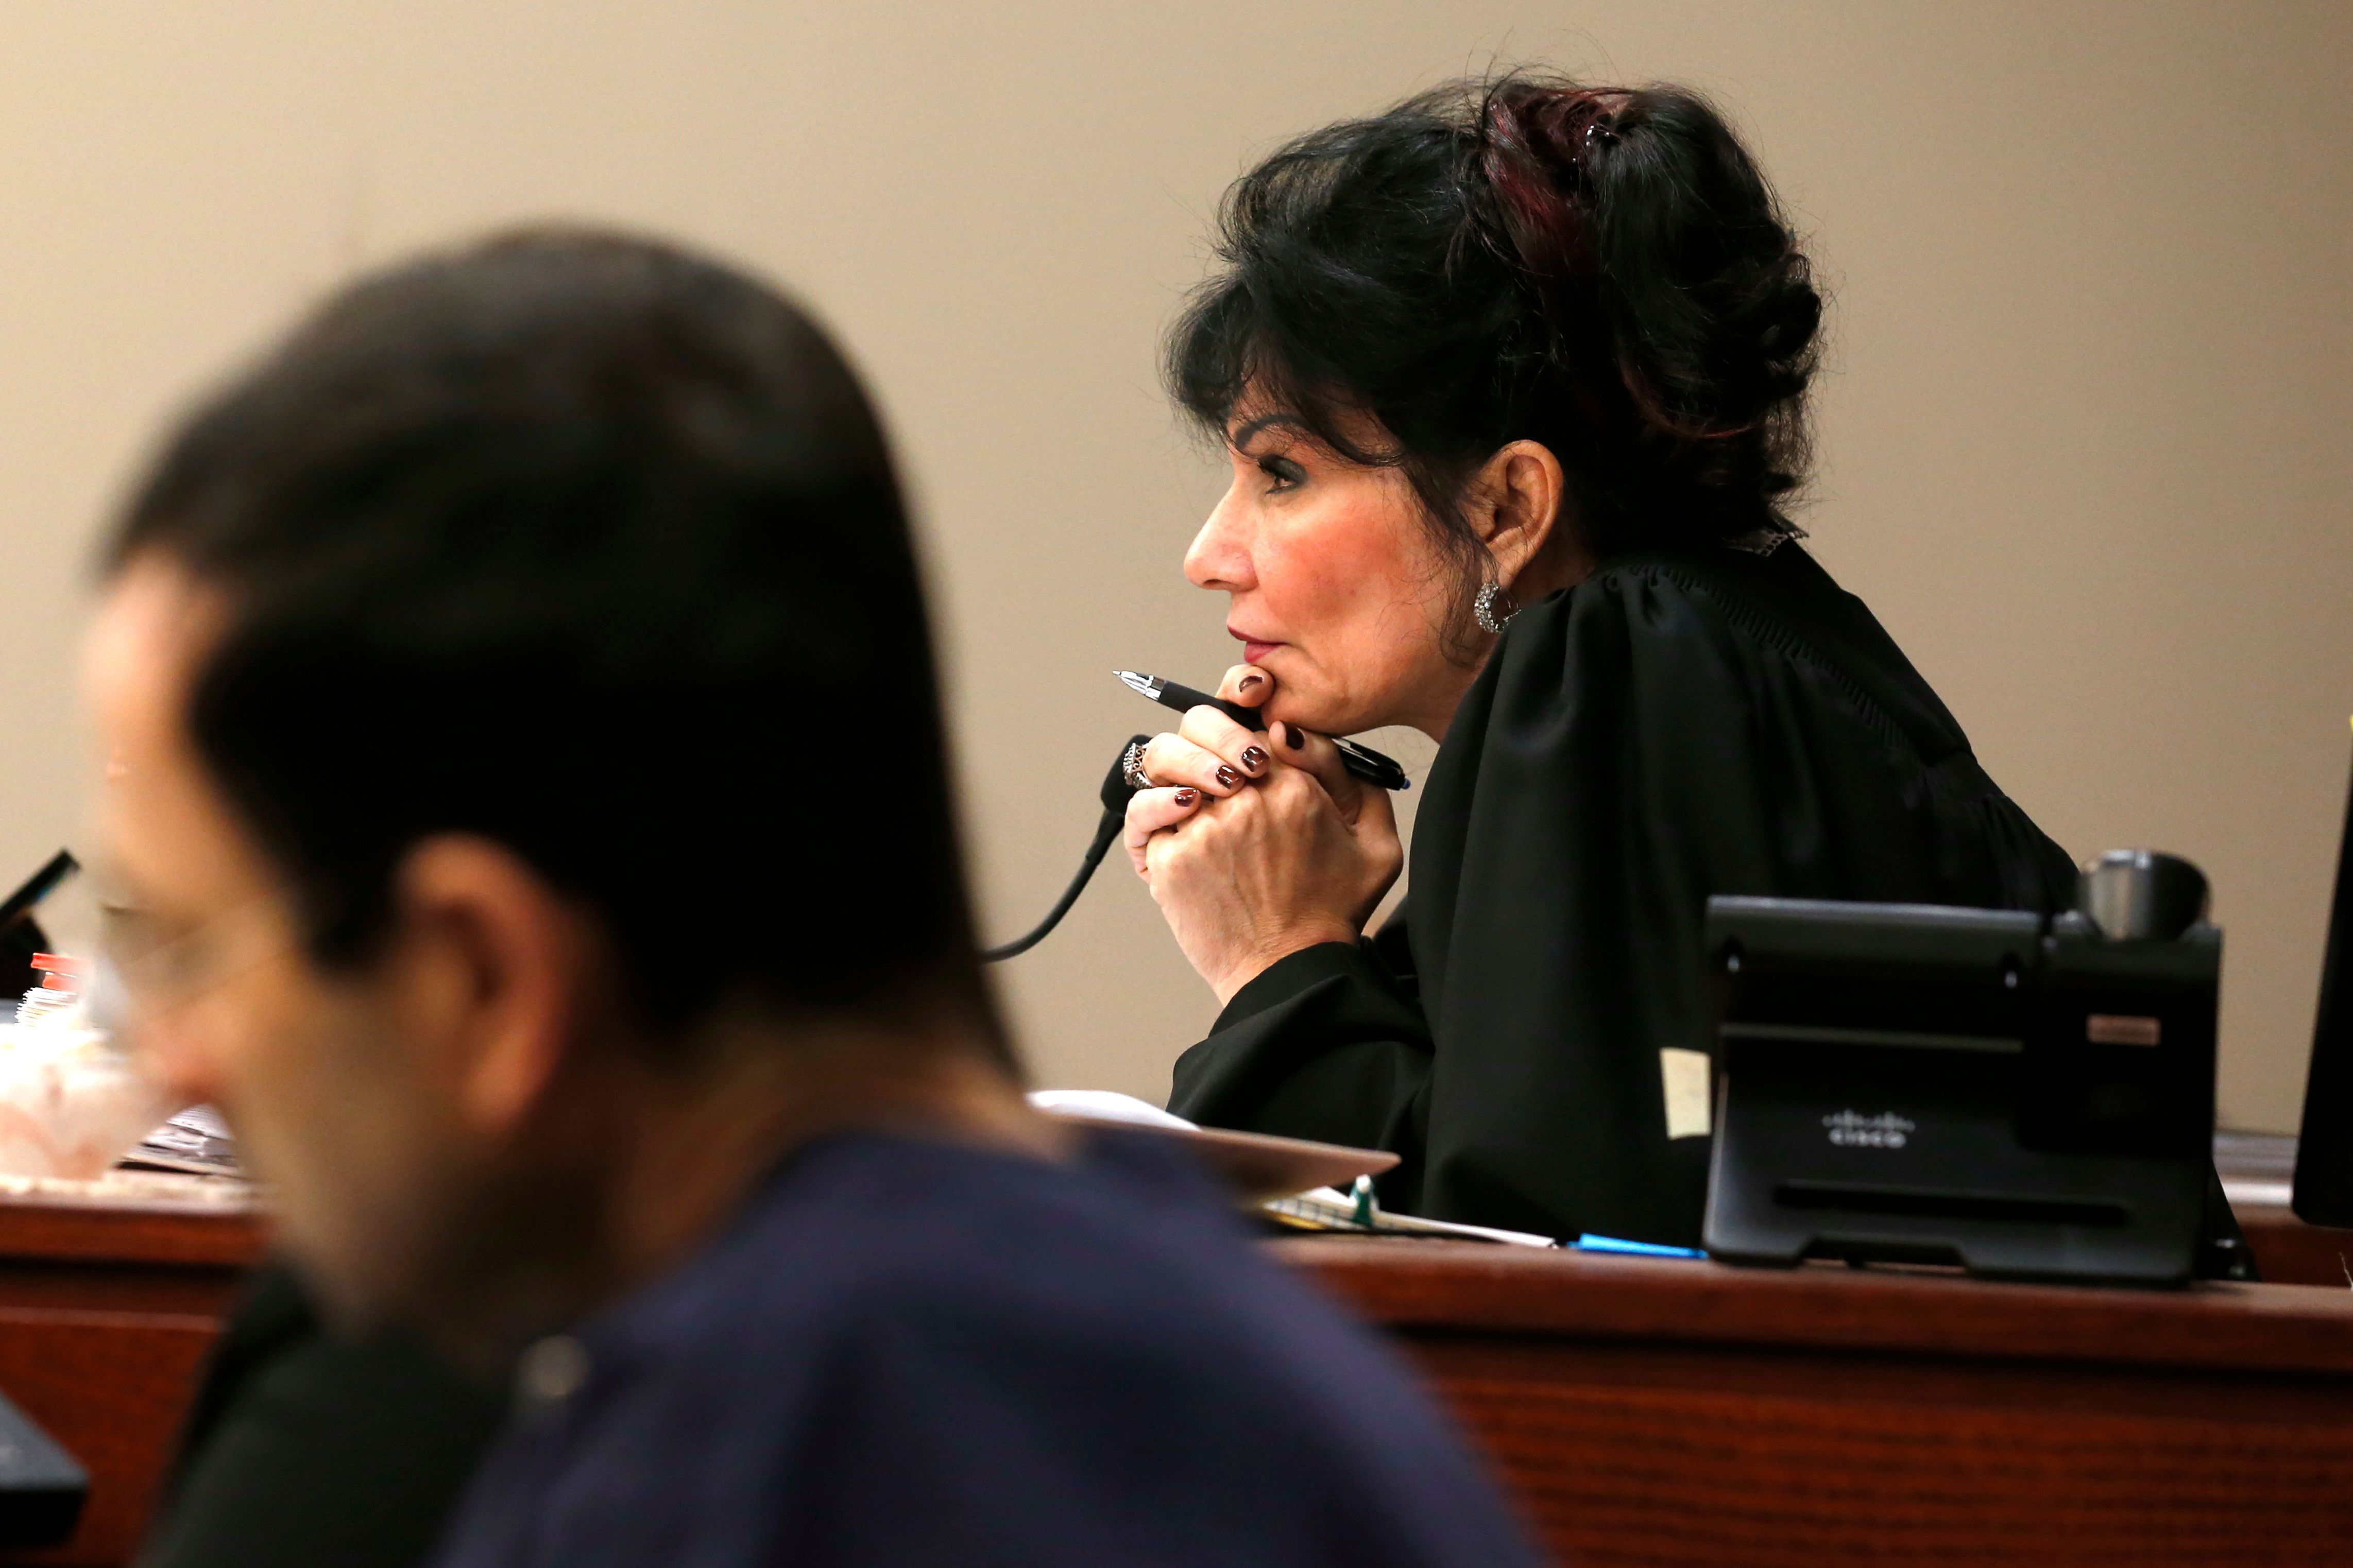 Larry Nassar and Judge Rosemarie Aquilina during his sentence hearing on Jan. 24 in Lansing, Michigan. She denied a motion to